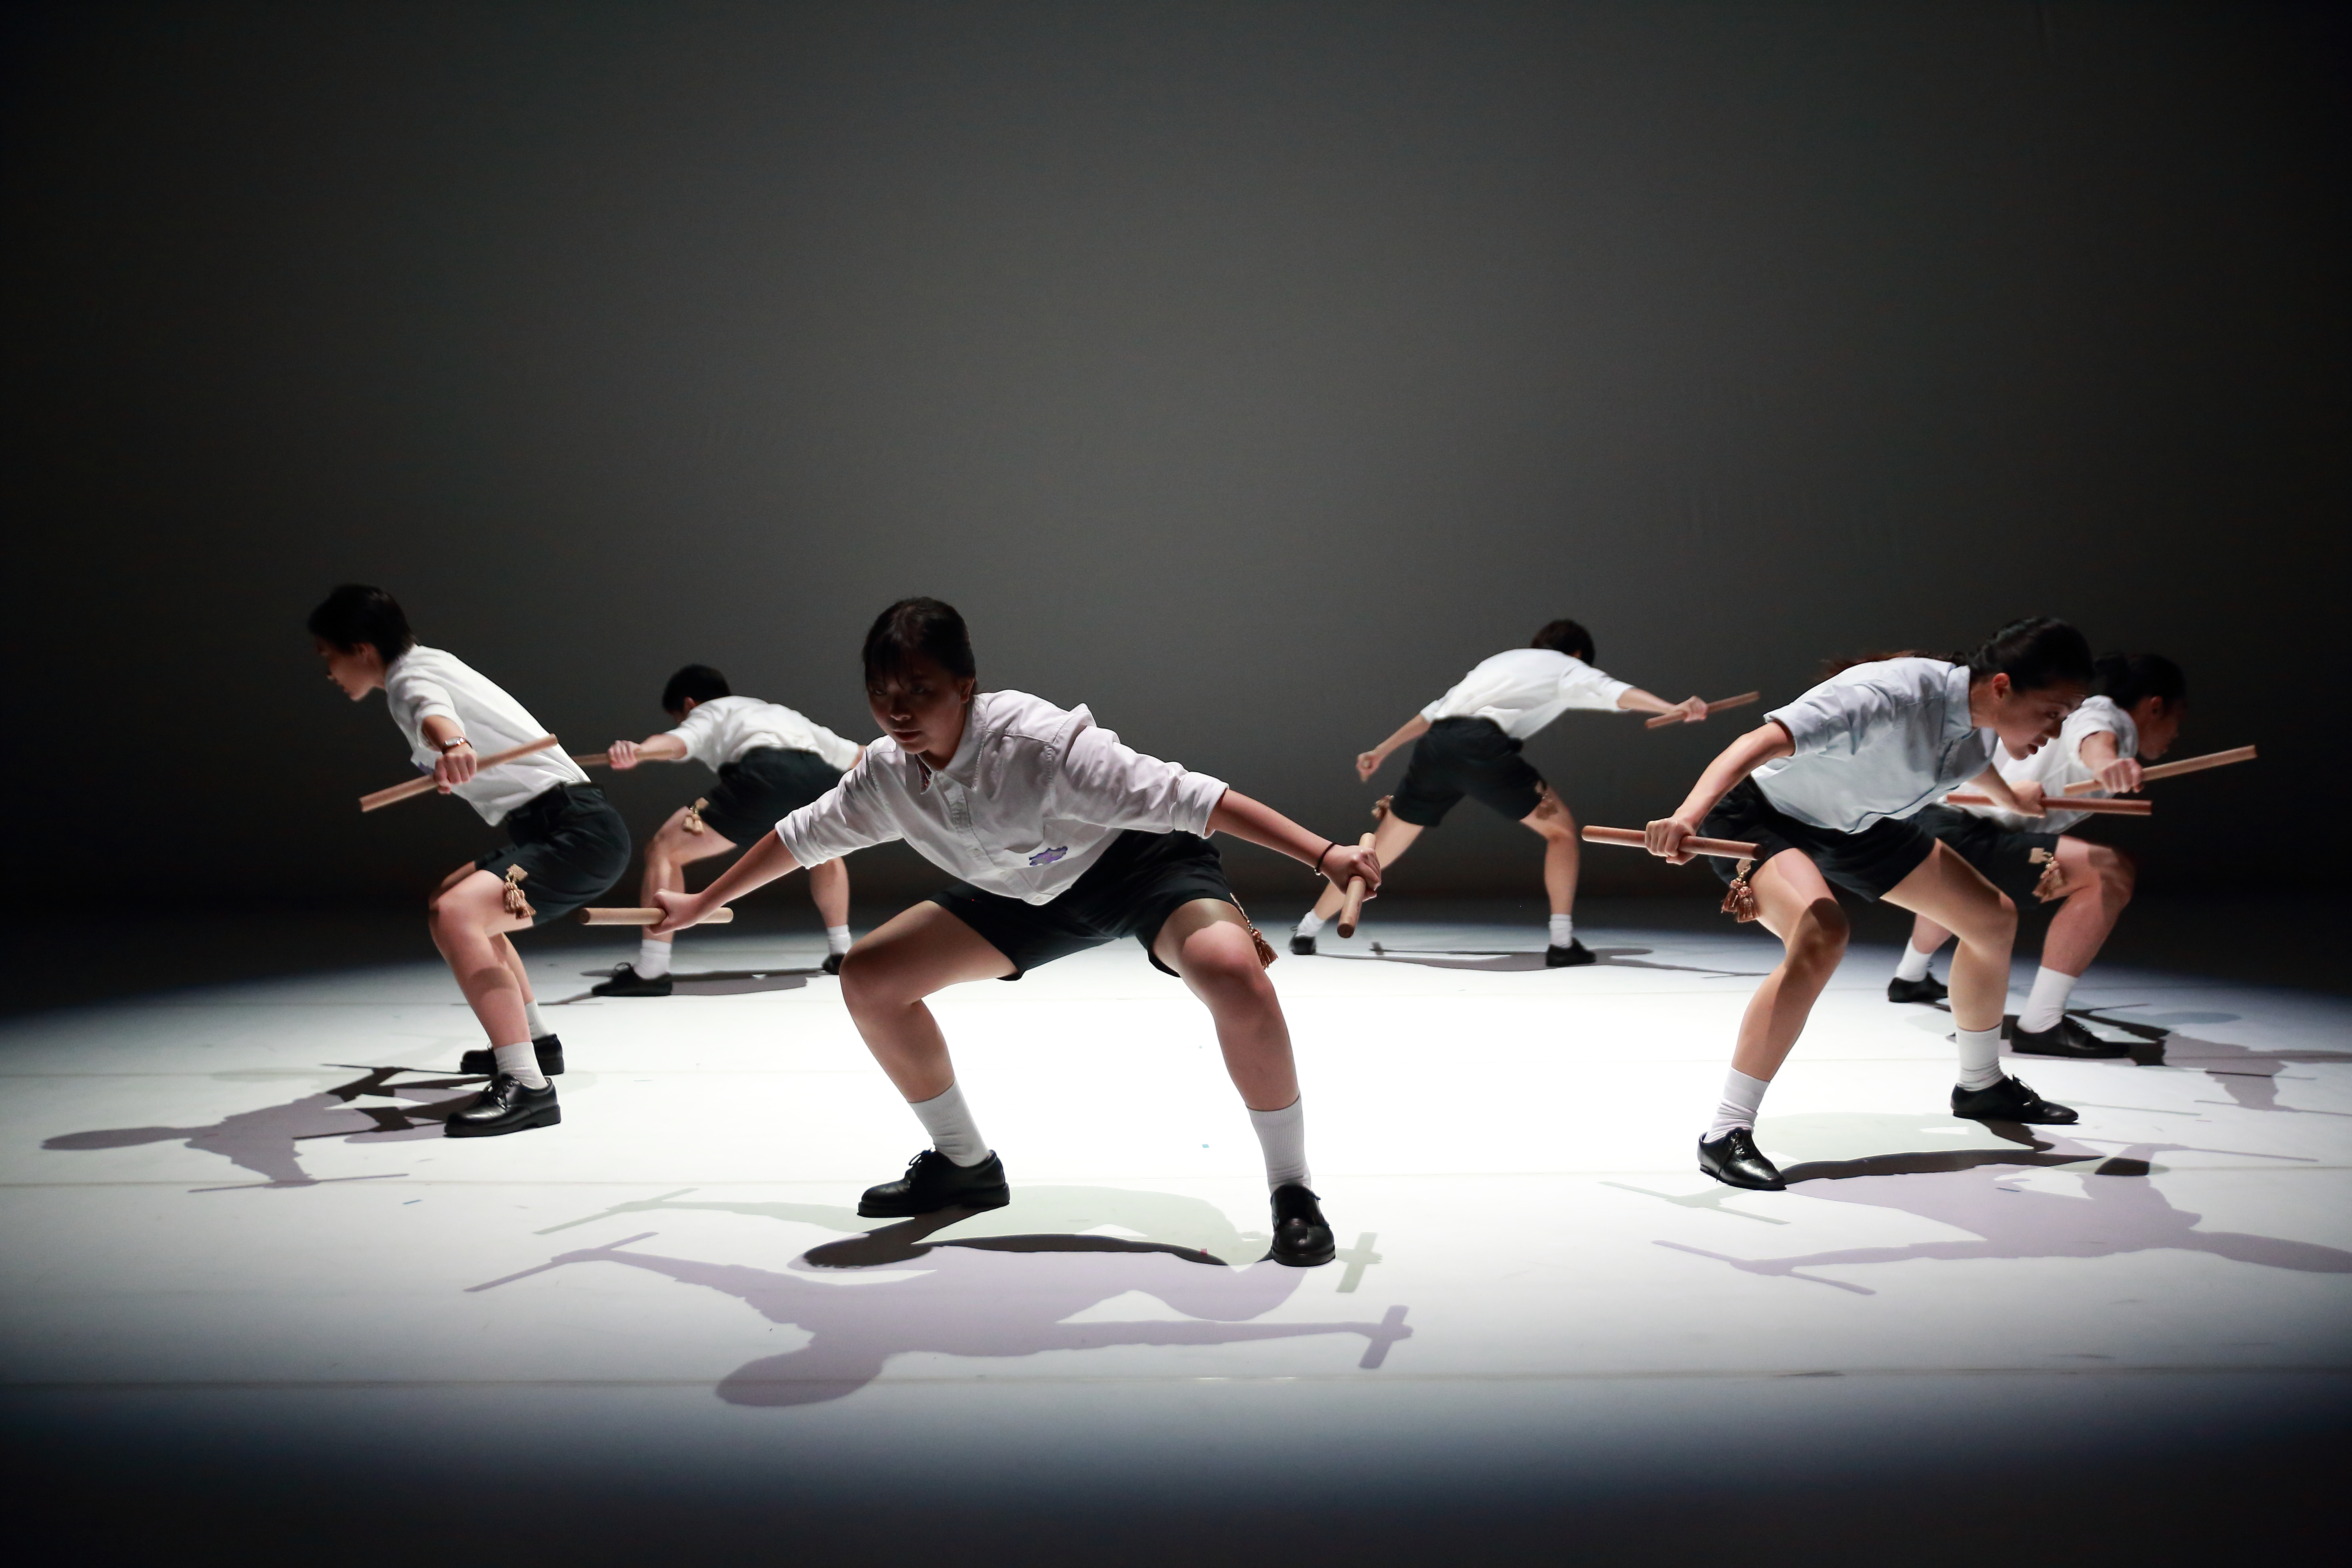 Bridging multiple cultures and generations, <i>Will You Still Love Me Tomorrow?</i> (Hong Kong Remix) is unprecedented in bringing to the stage 10 student dancers, who took part along with local professional dancers